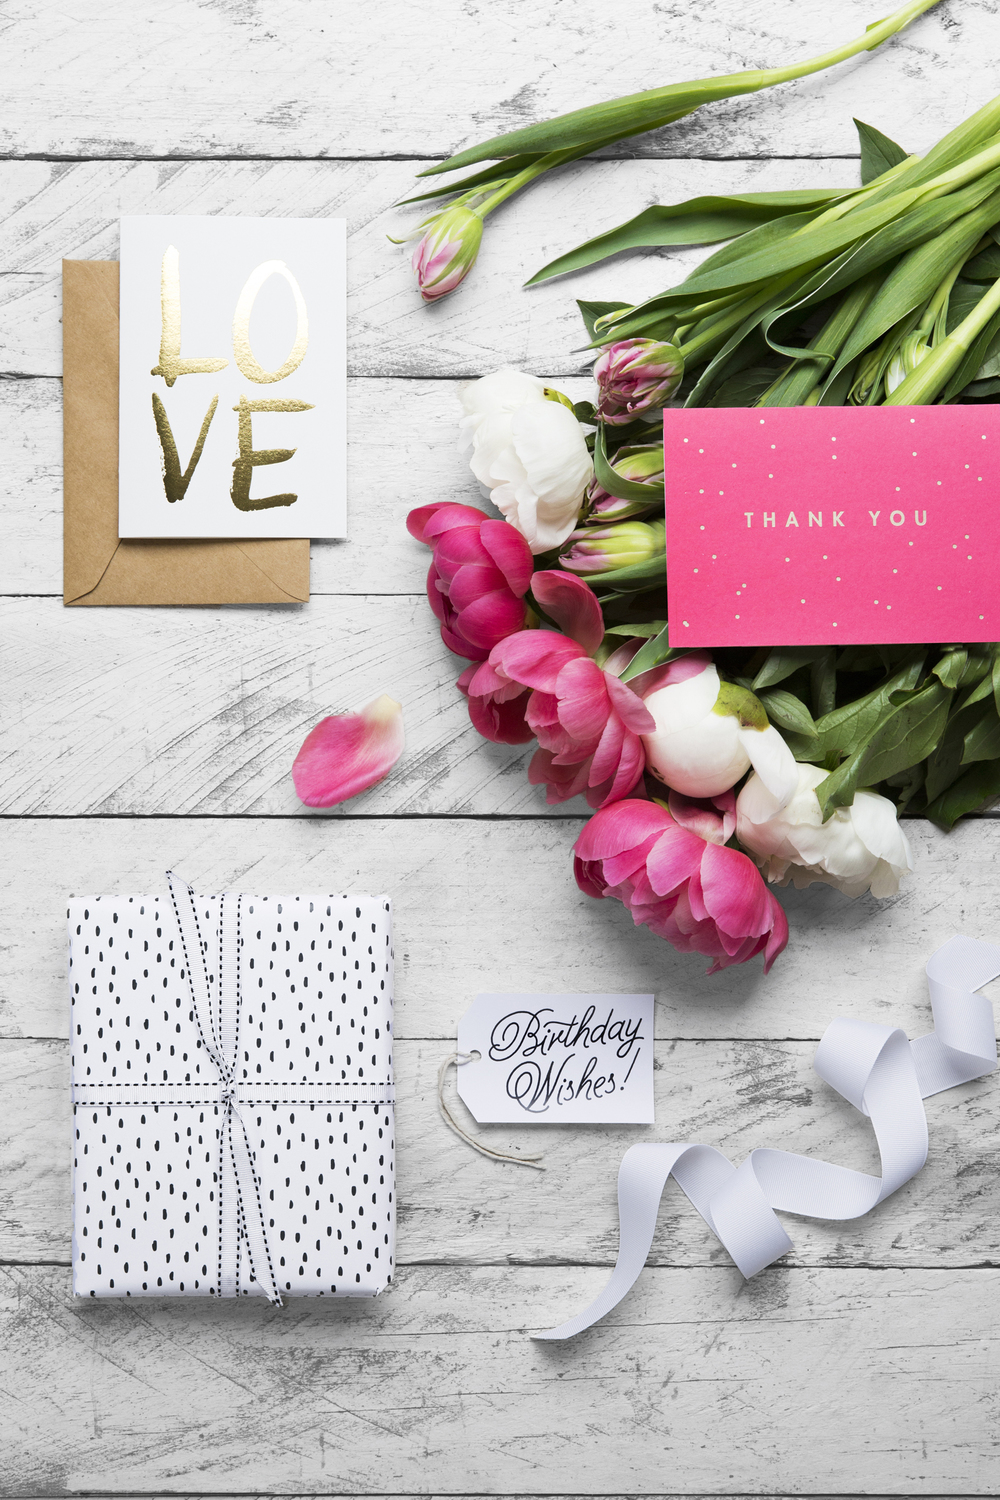 Cards, Wrapping Paper & Gift Tag from ELM Paper.